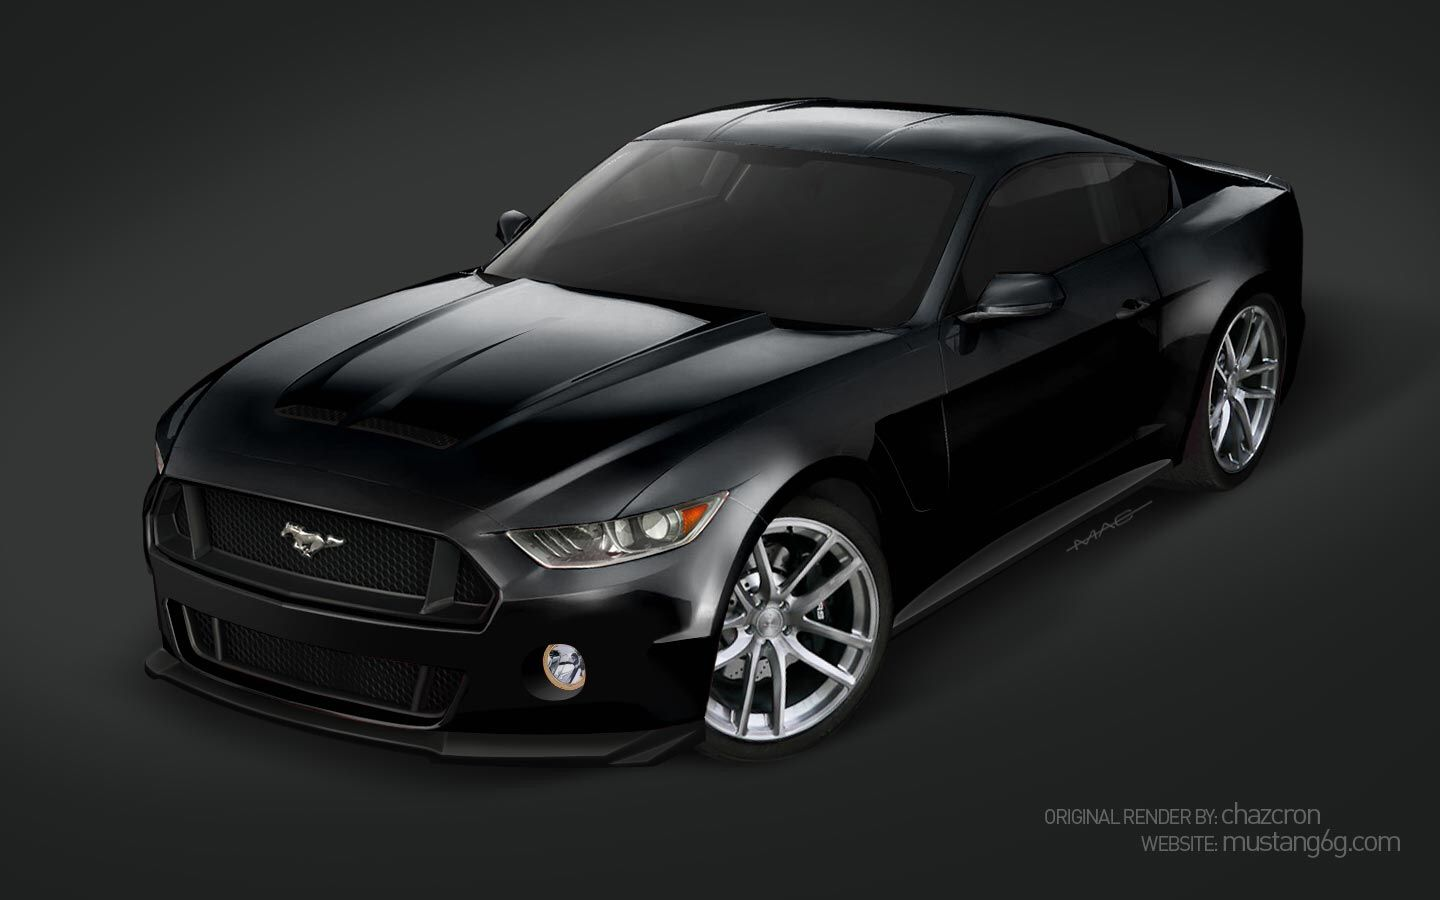 Image From Findhdwallpaper Wp Content Uploads 2015 04 2016 Ford Mustang GT Black Colors HD Background Wallpaper